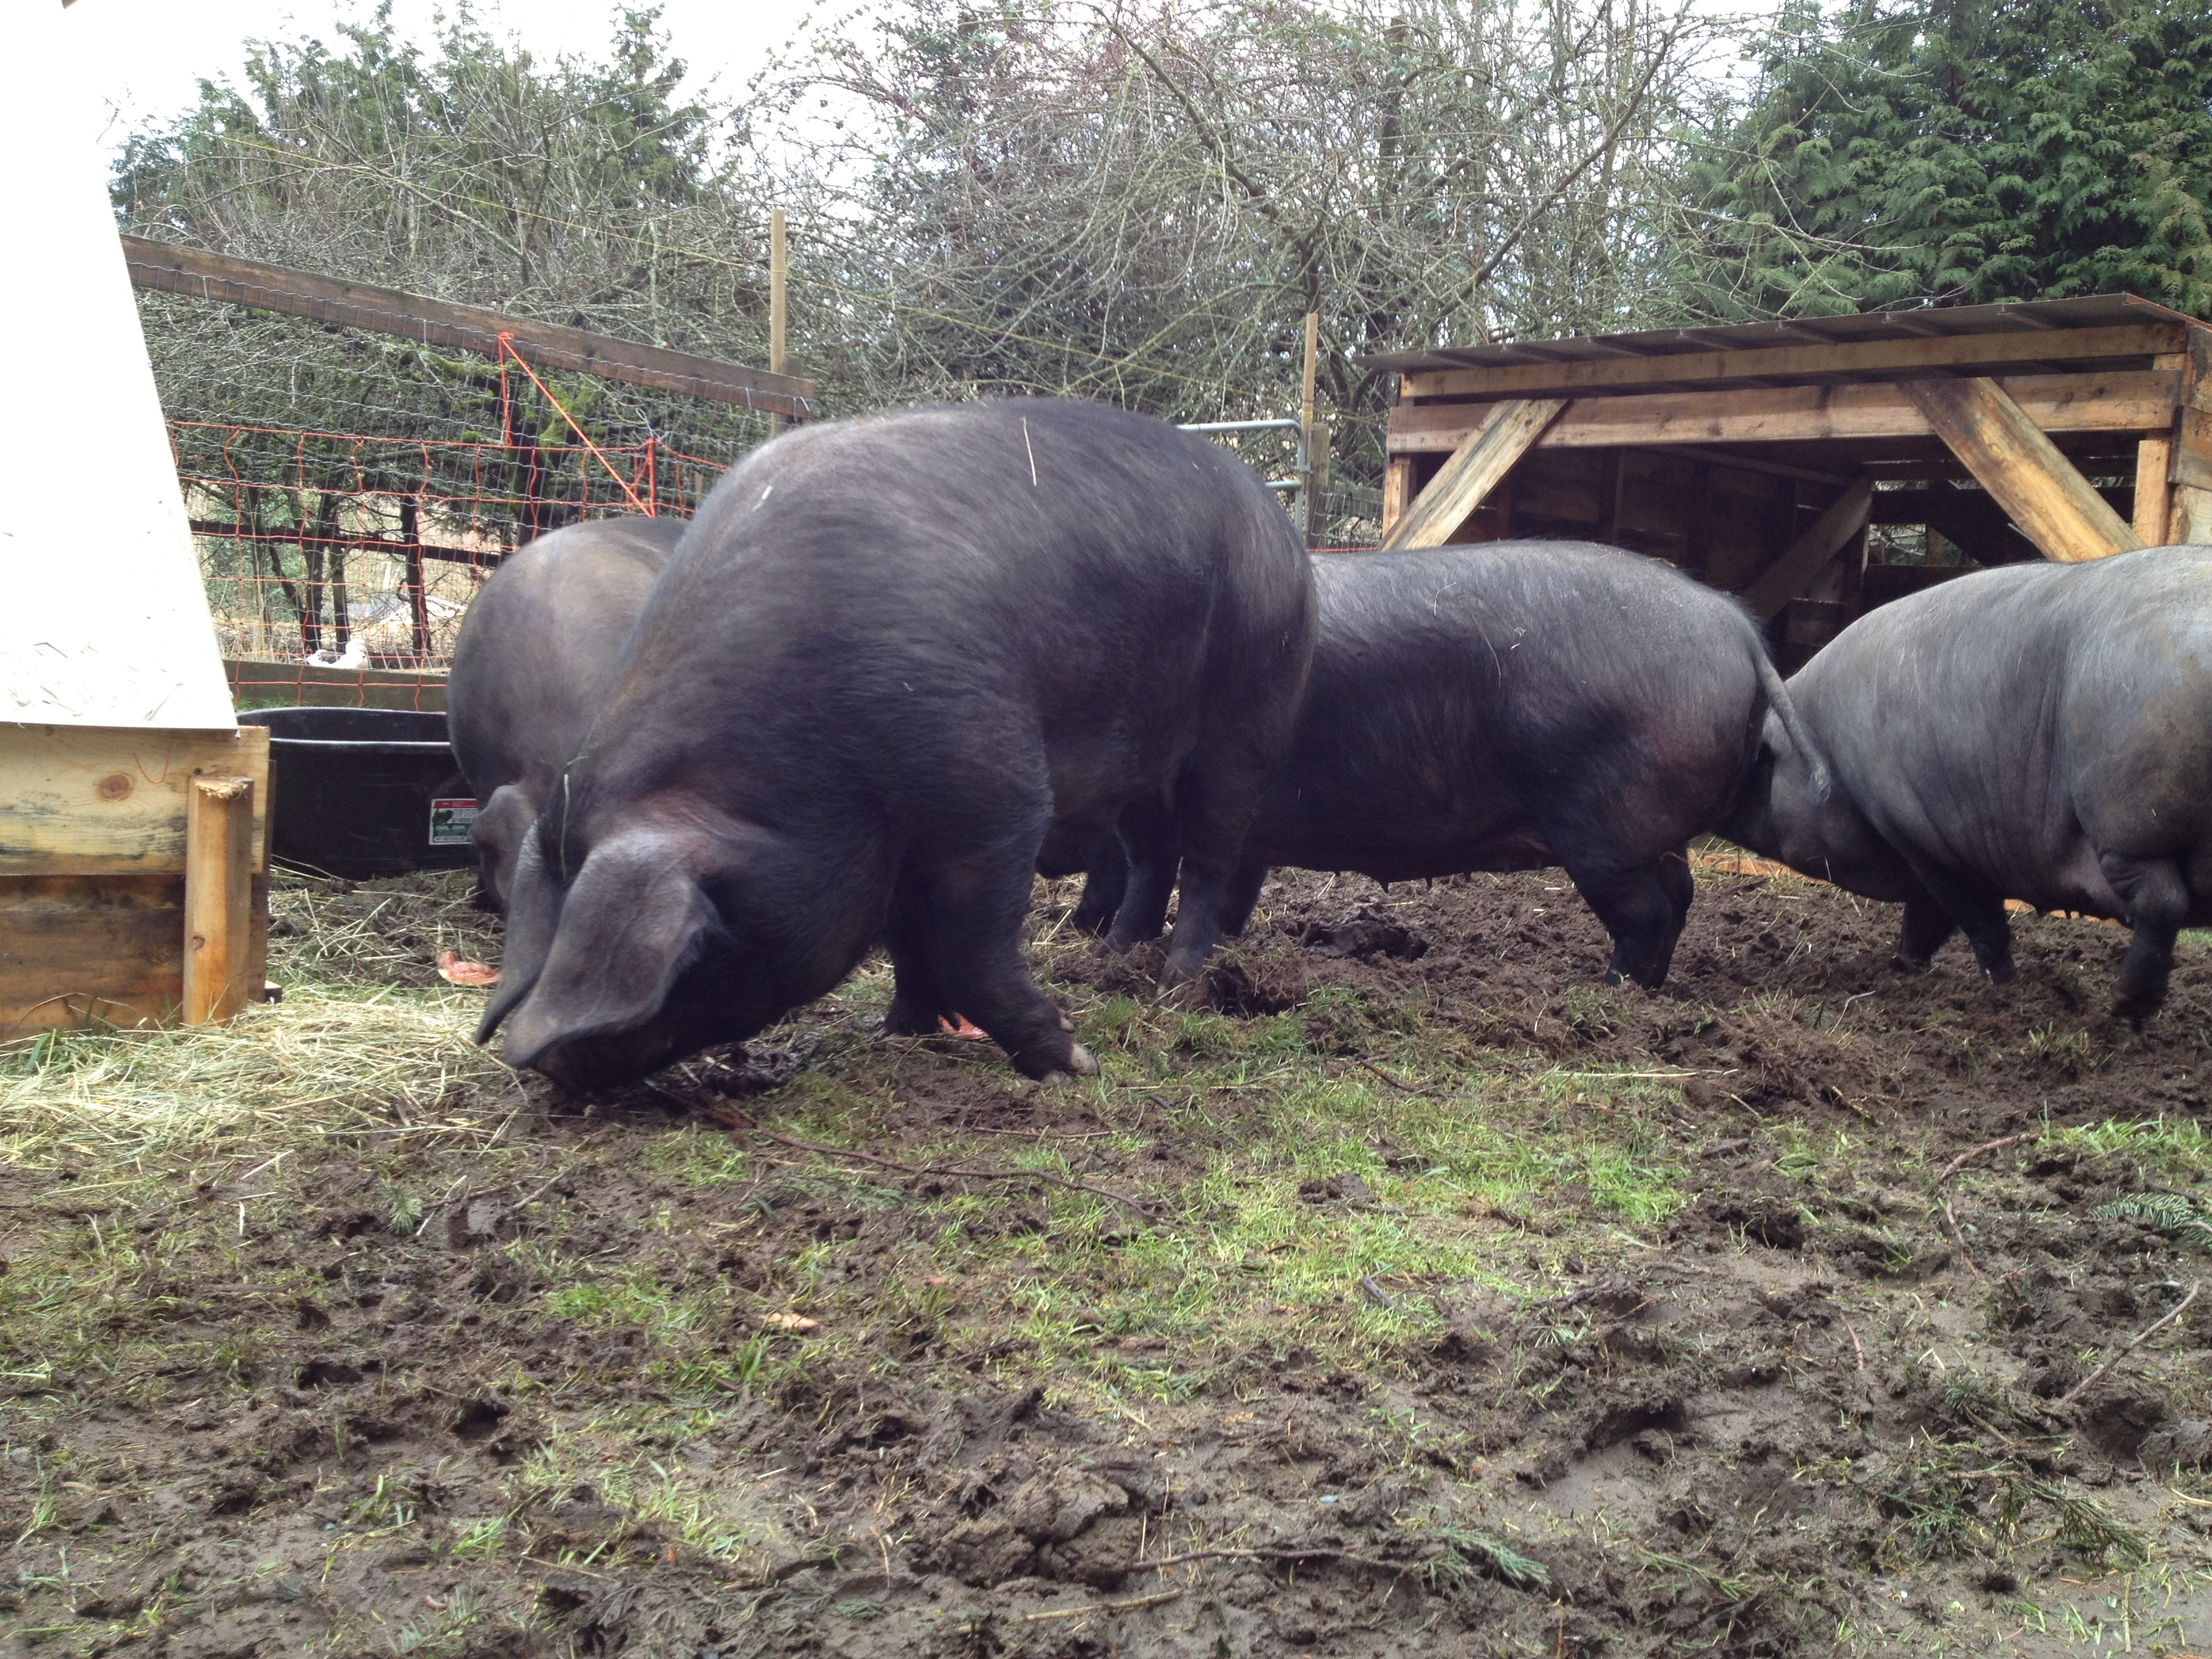 Large Black Hogs | darkcreekfarmdotcom